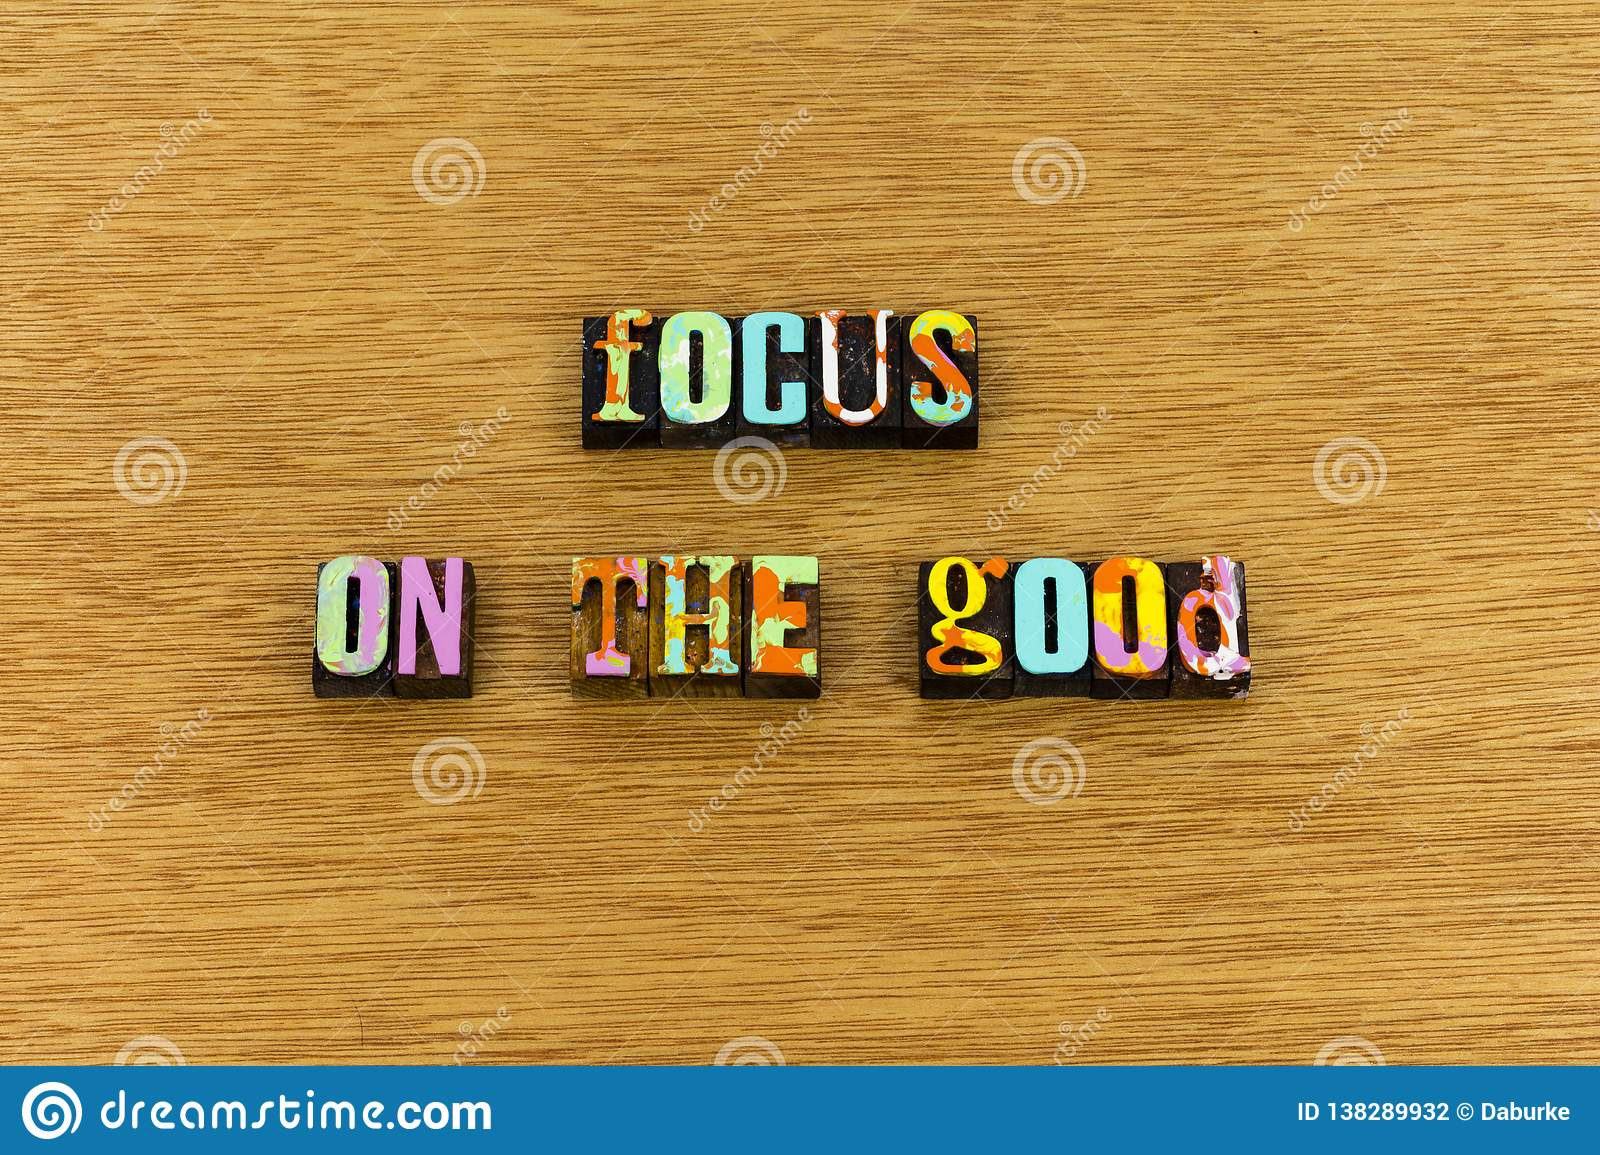 Focus good help kind joy healthy typography